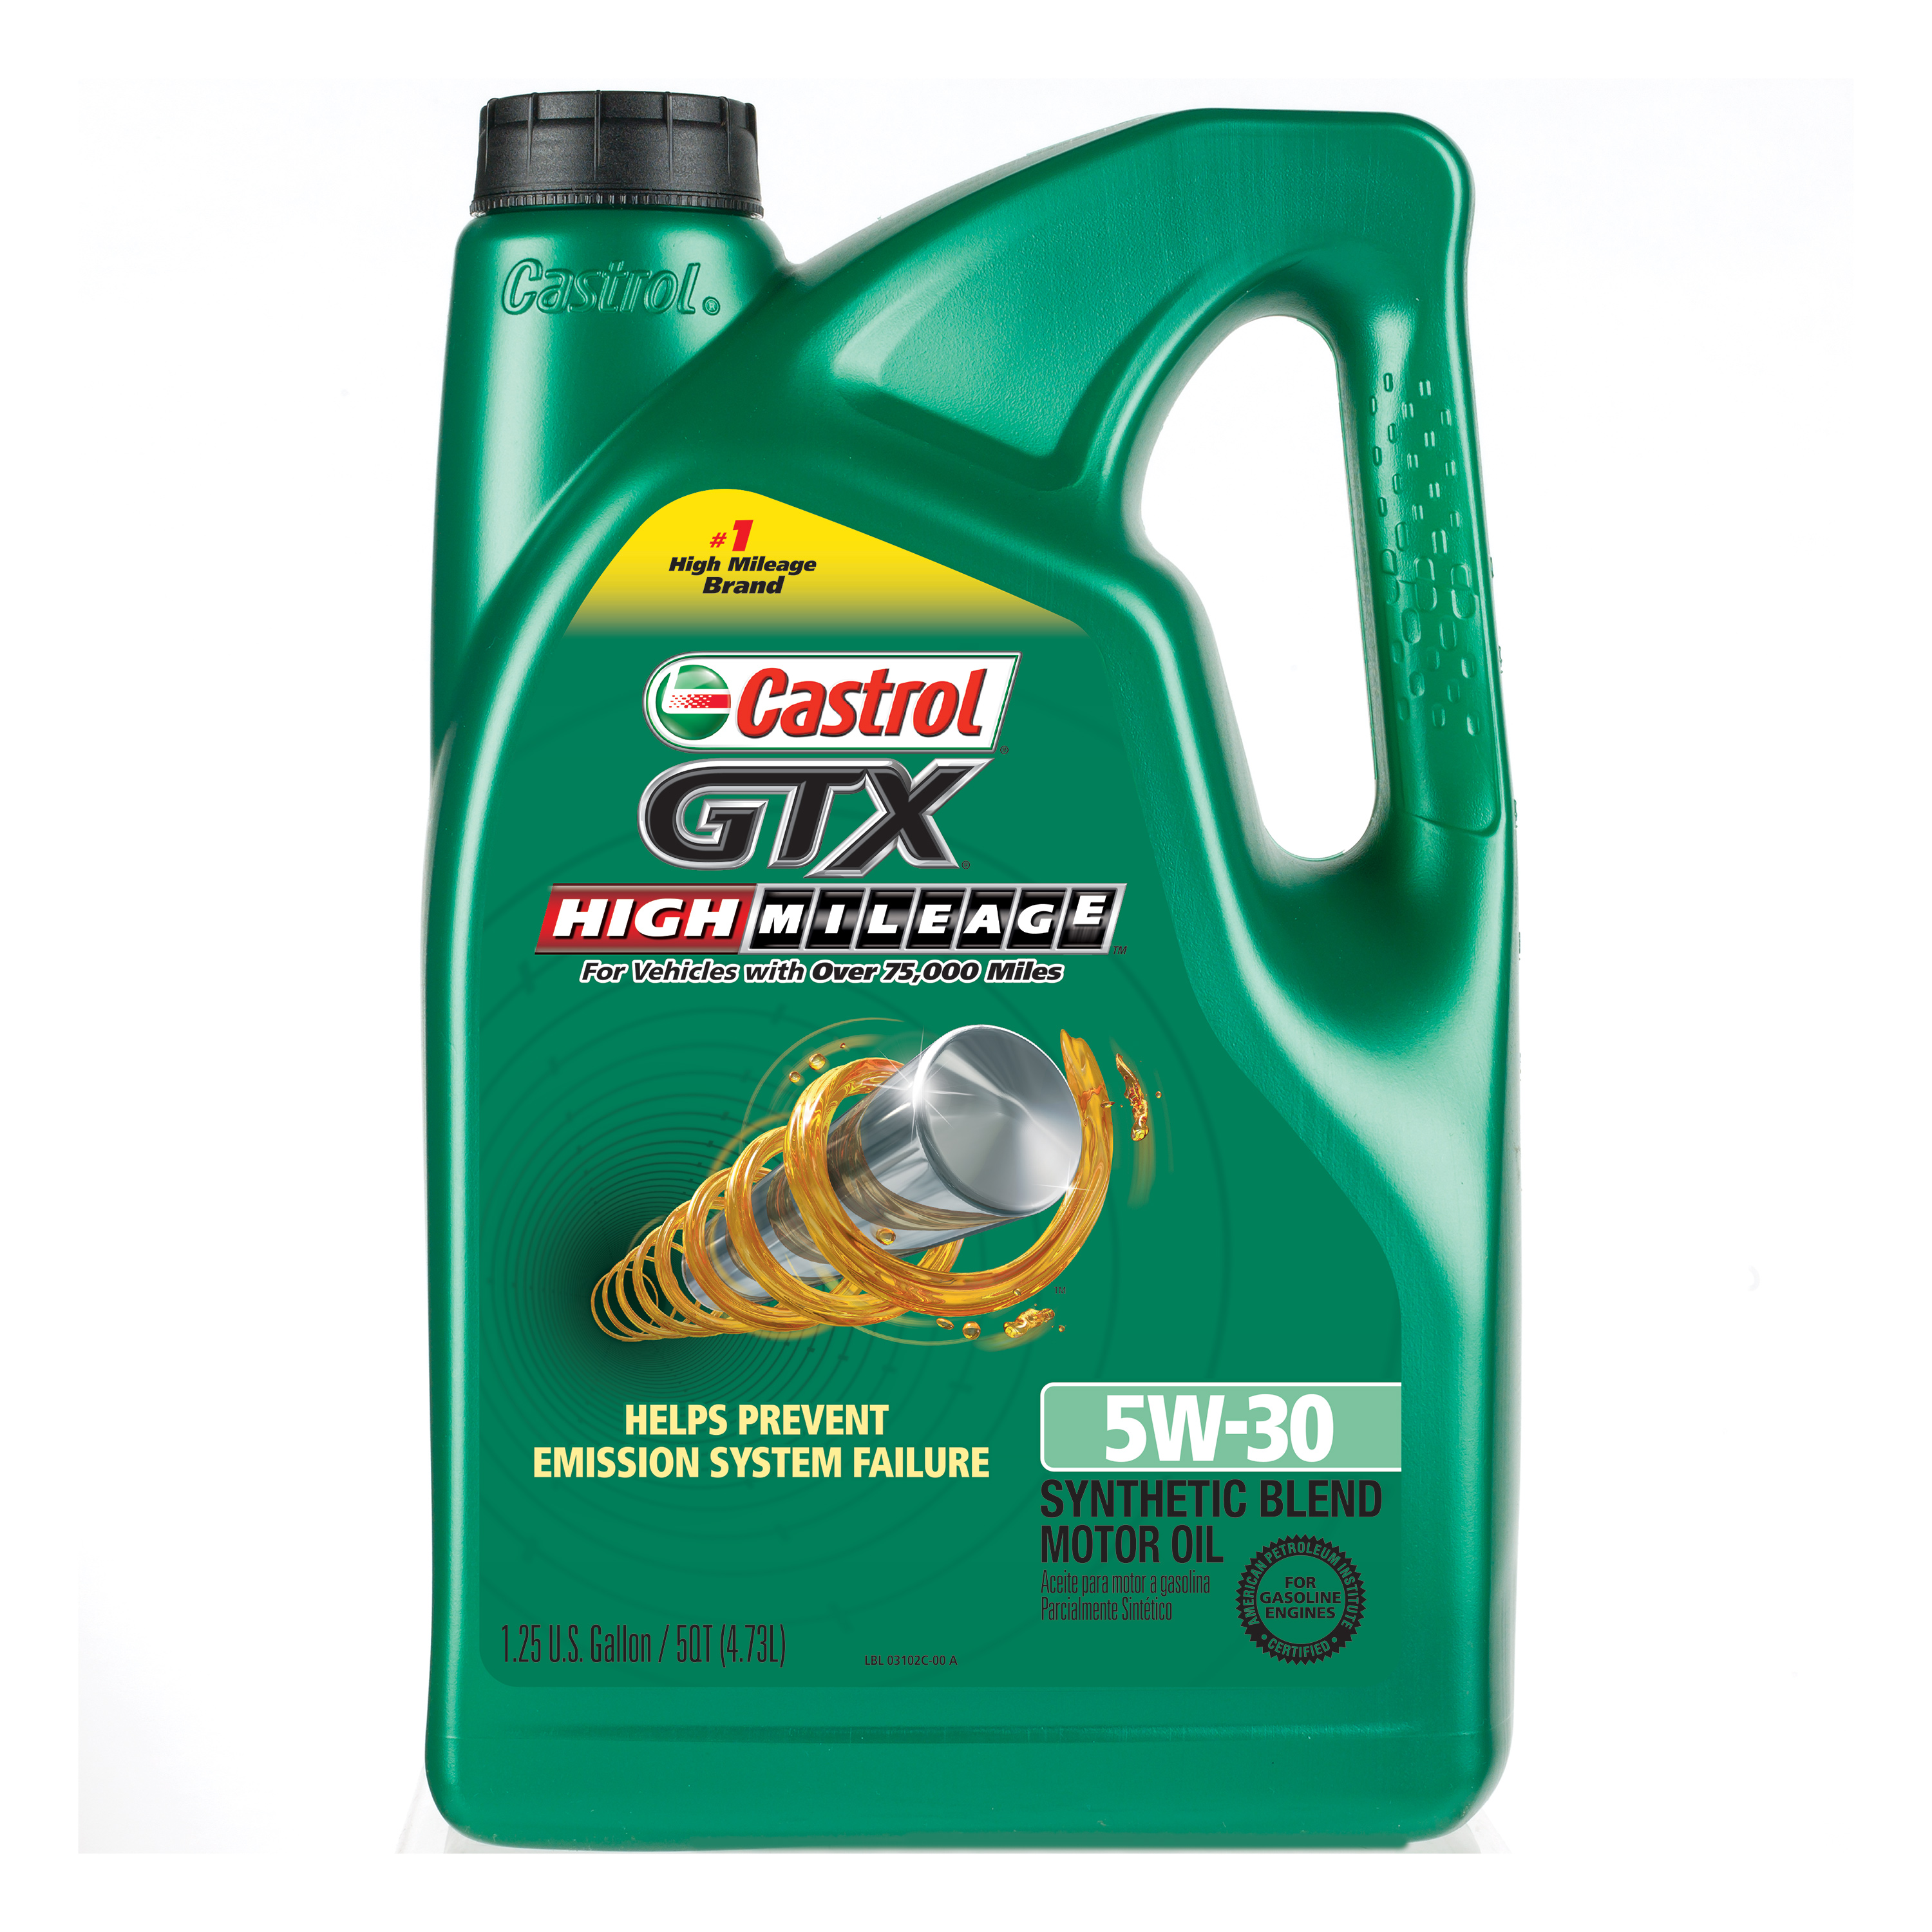 Castrol GTX High Mileage 5W-30 Synthetic Blend Motor Oil, 5 QT